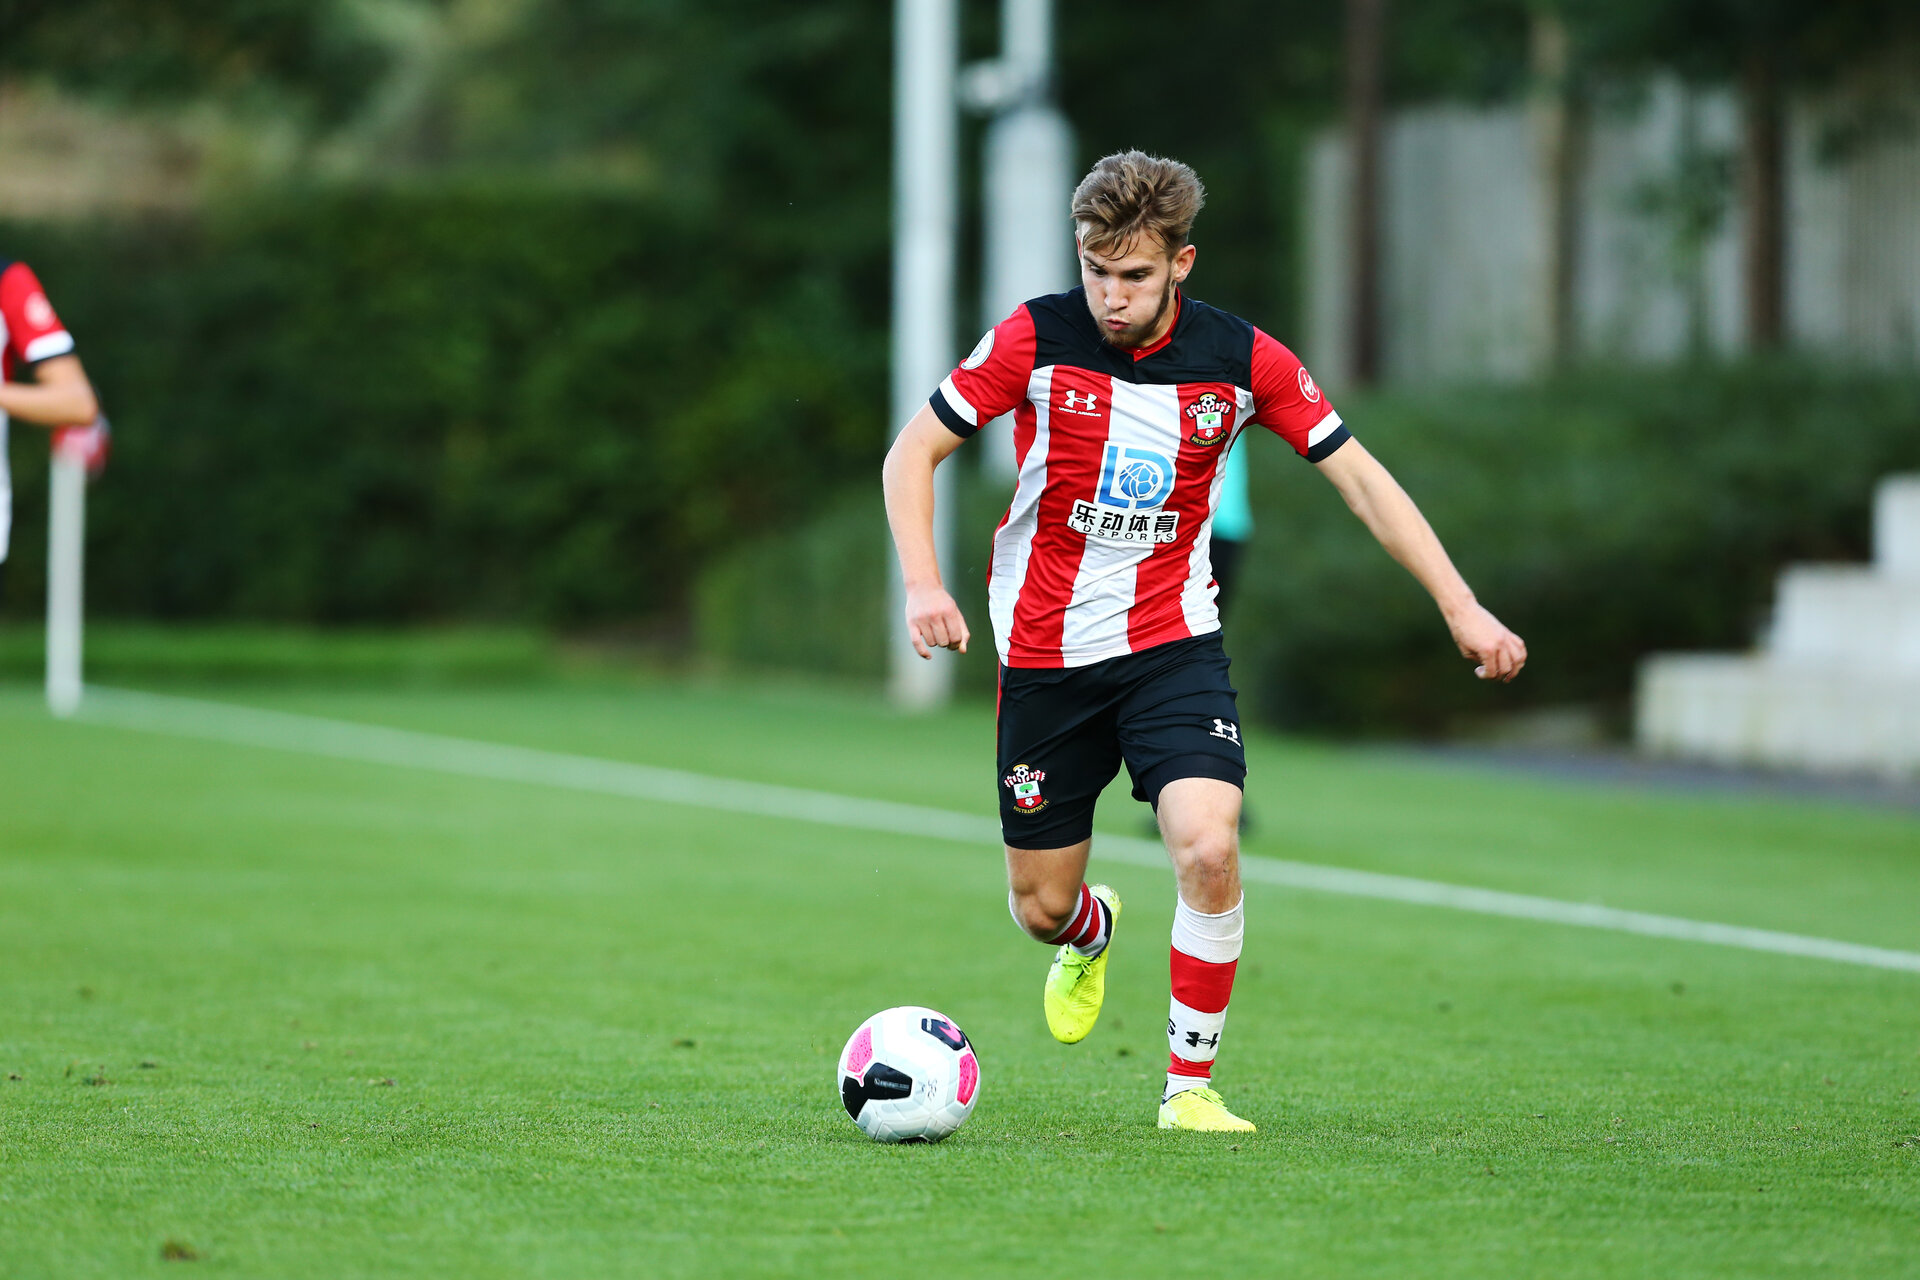 SOUTHAMPTON, ENGLAND - AUGUST 19: Jake Vokins  during the match between Southampton FC and Derby County FC pictured at Staplewood Training Ground on August 19, 2019 in Southampton, England. (Photo by James Bridle - Southampton FC/Southampton FC via Getty Images)